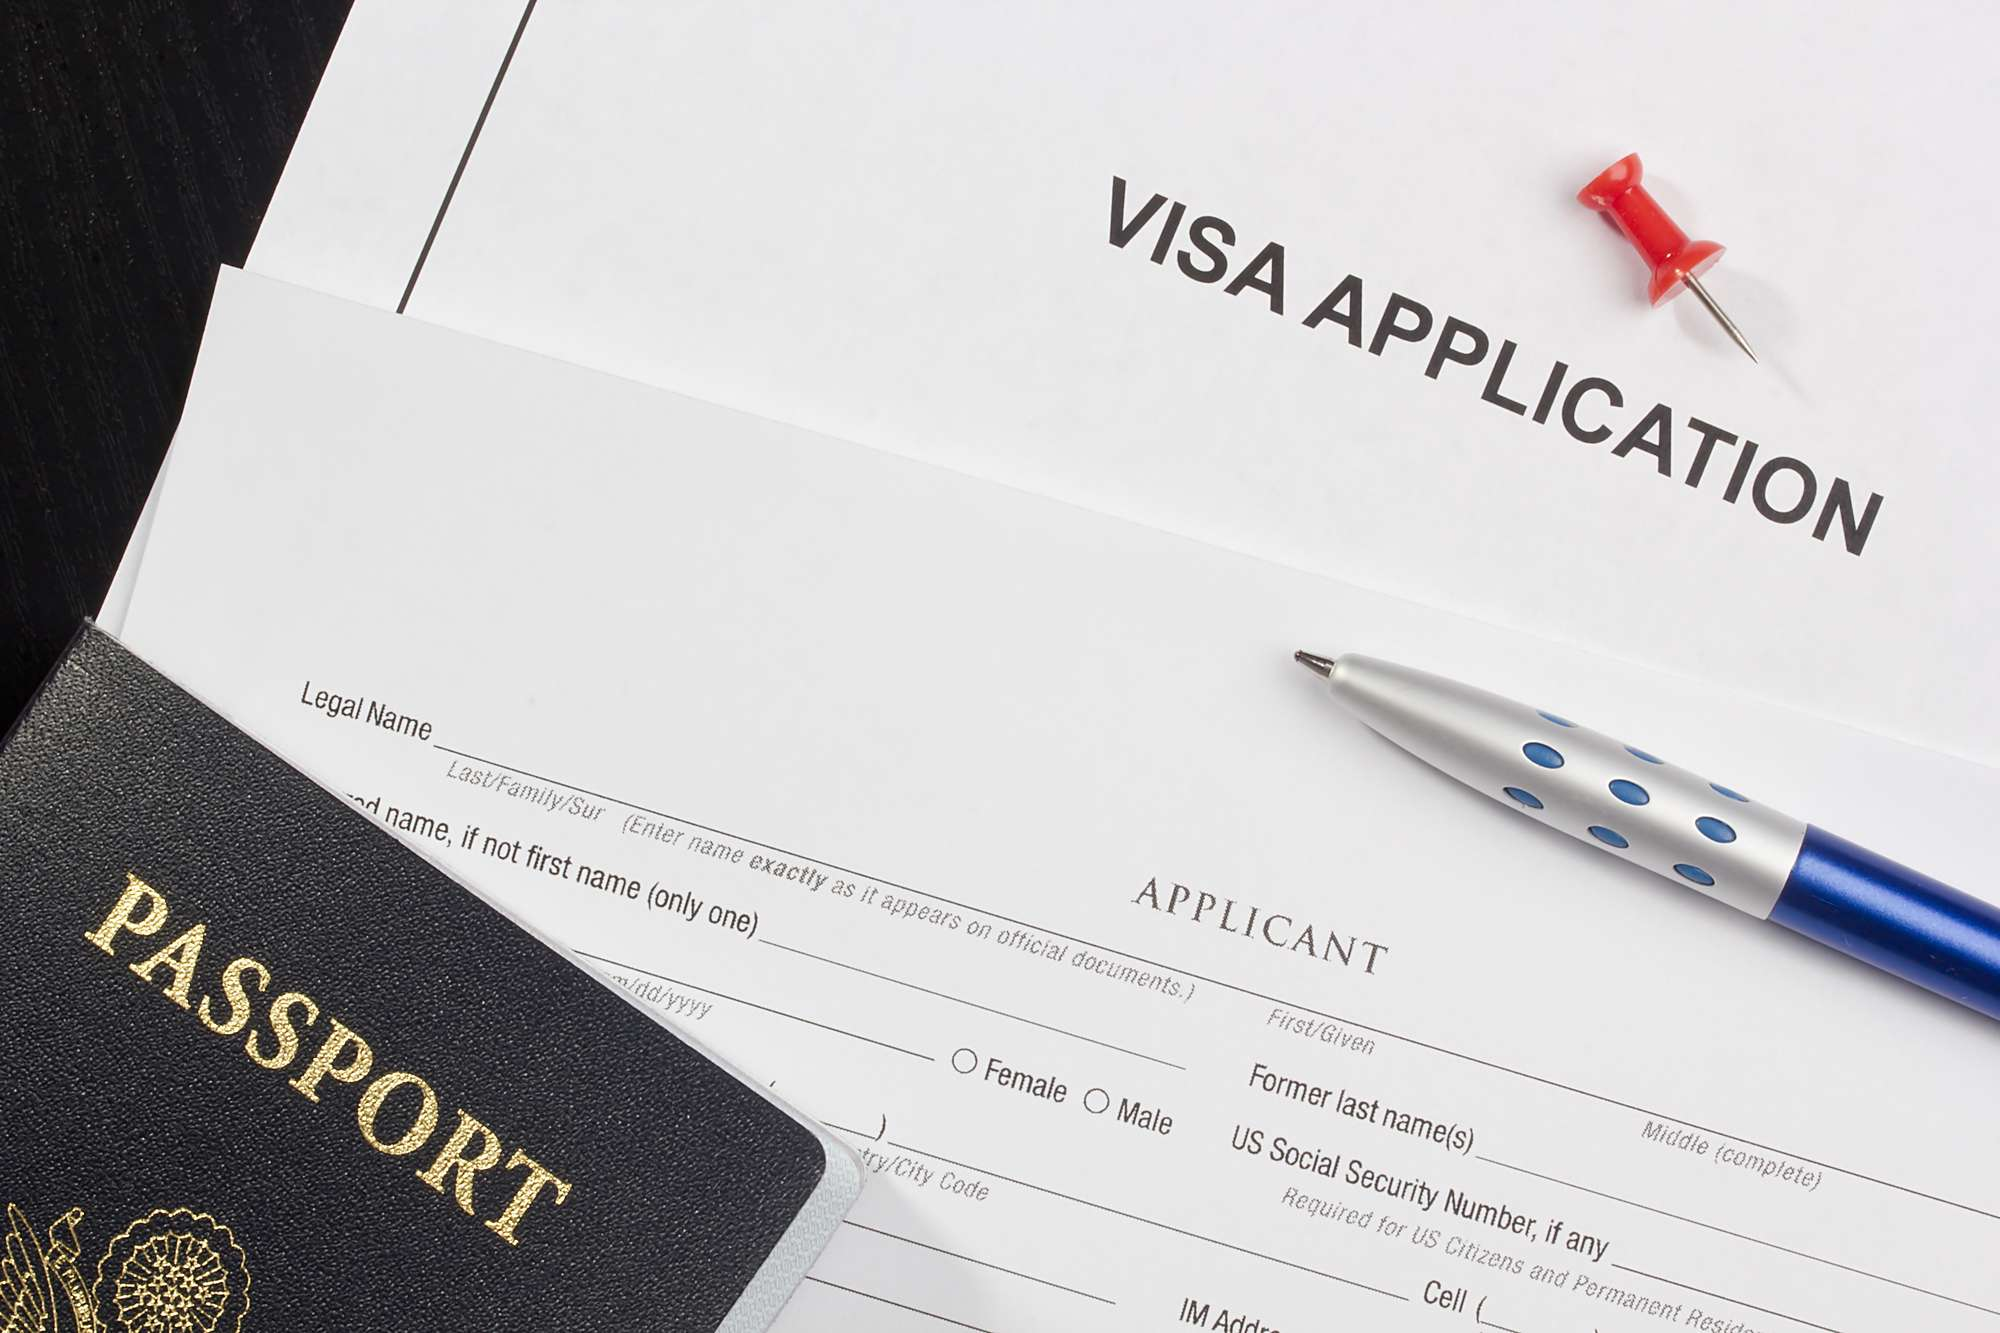 visa application for international coaching applicants in college athletics